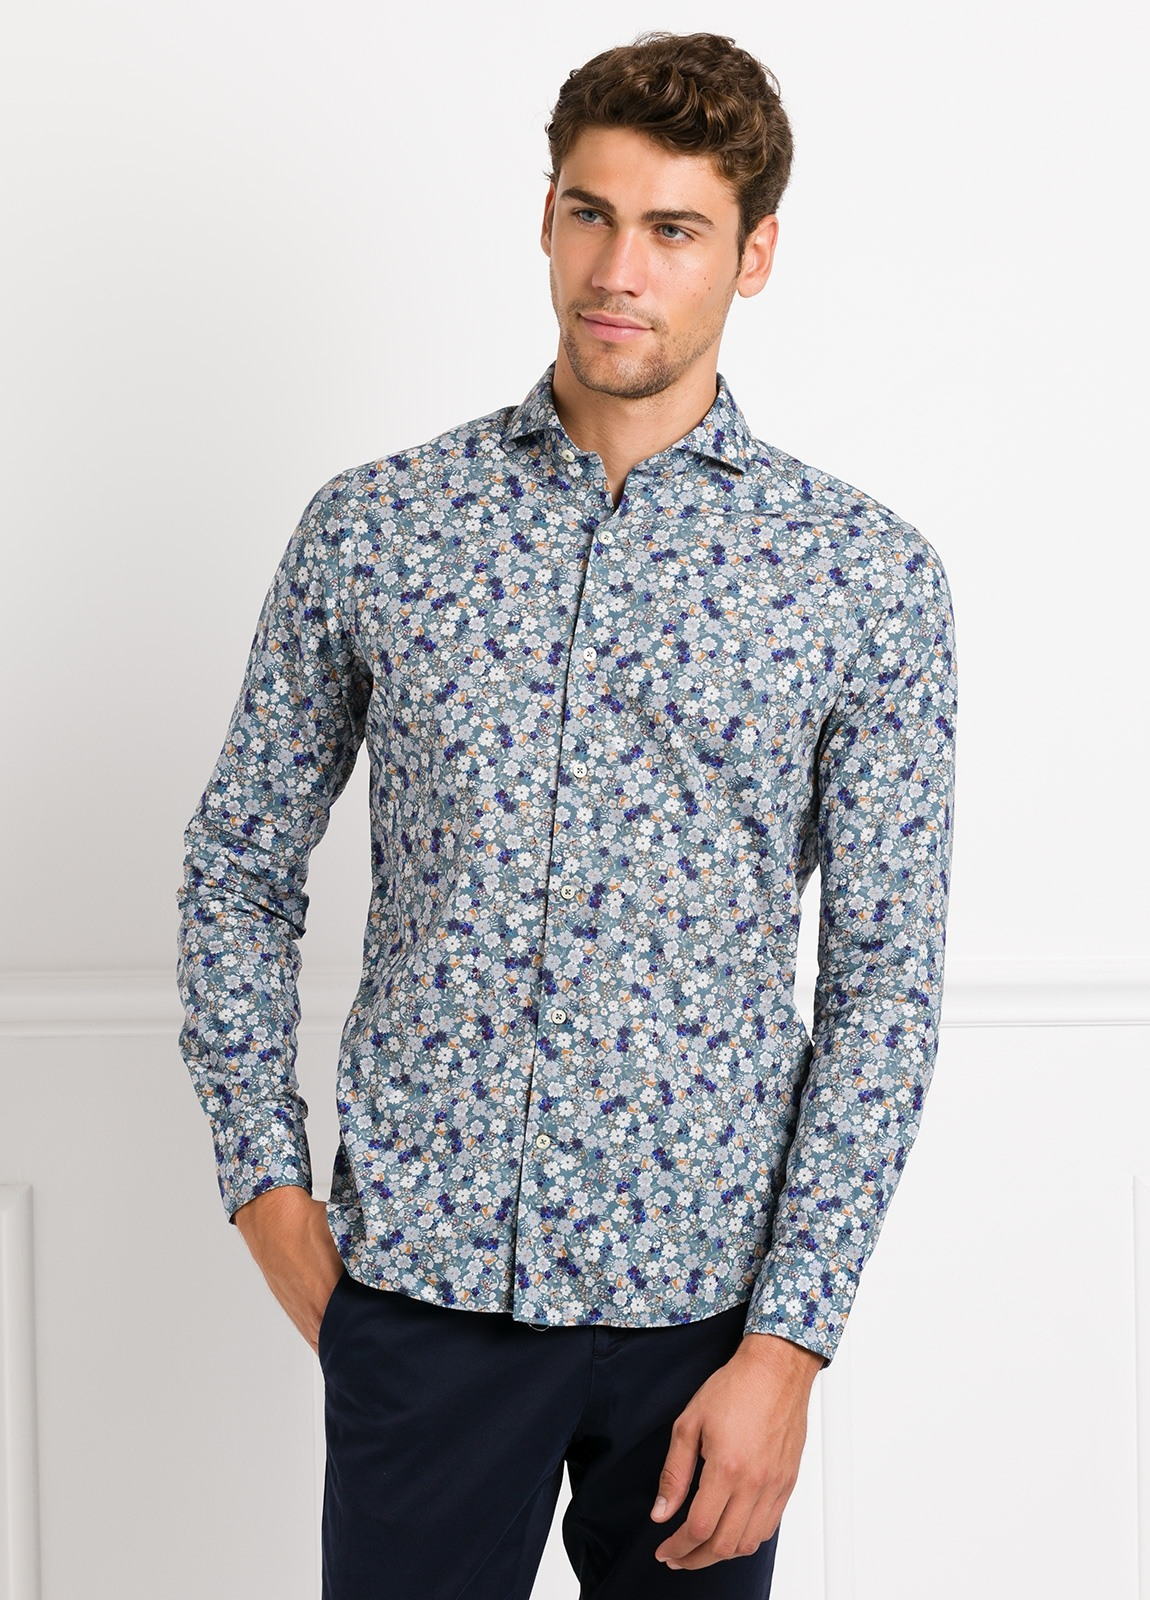 Camisa Leisure Wear SLIM FIT Modelo CAPRI tejido estampado flores color azul, 100% Algodón.